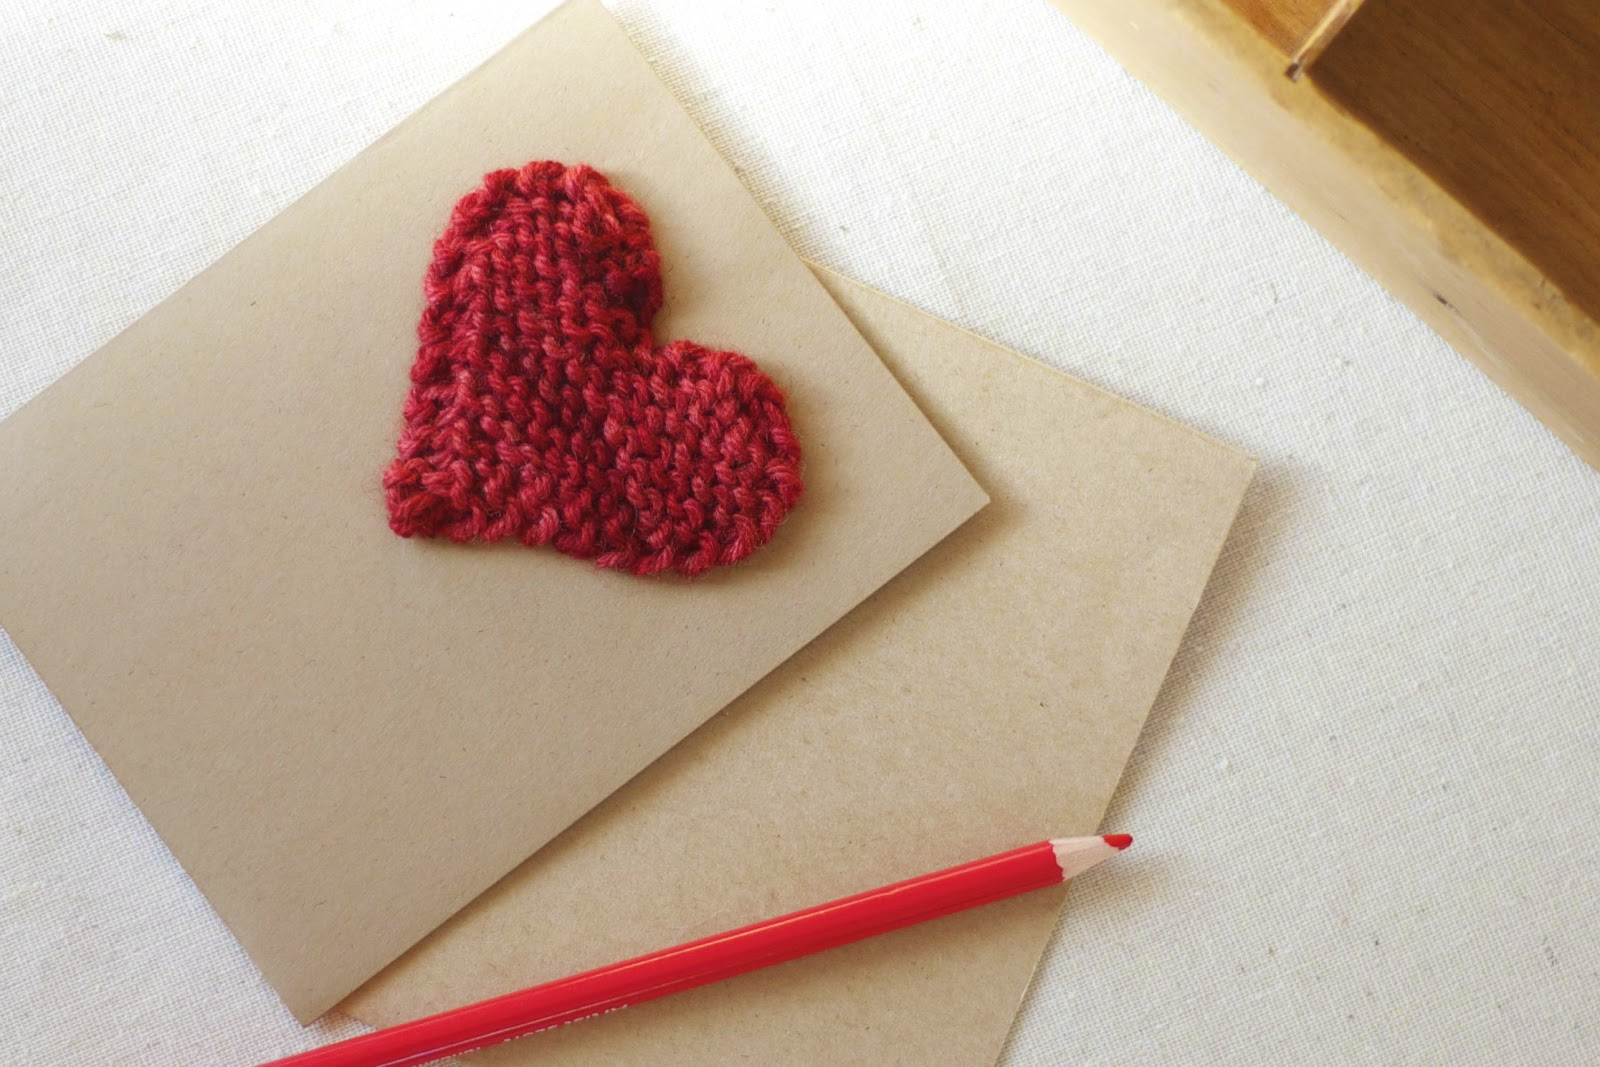 ... love you, like a hand~knit valentine heart. Here's how to make one